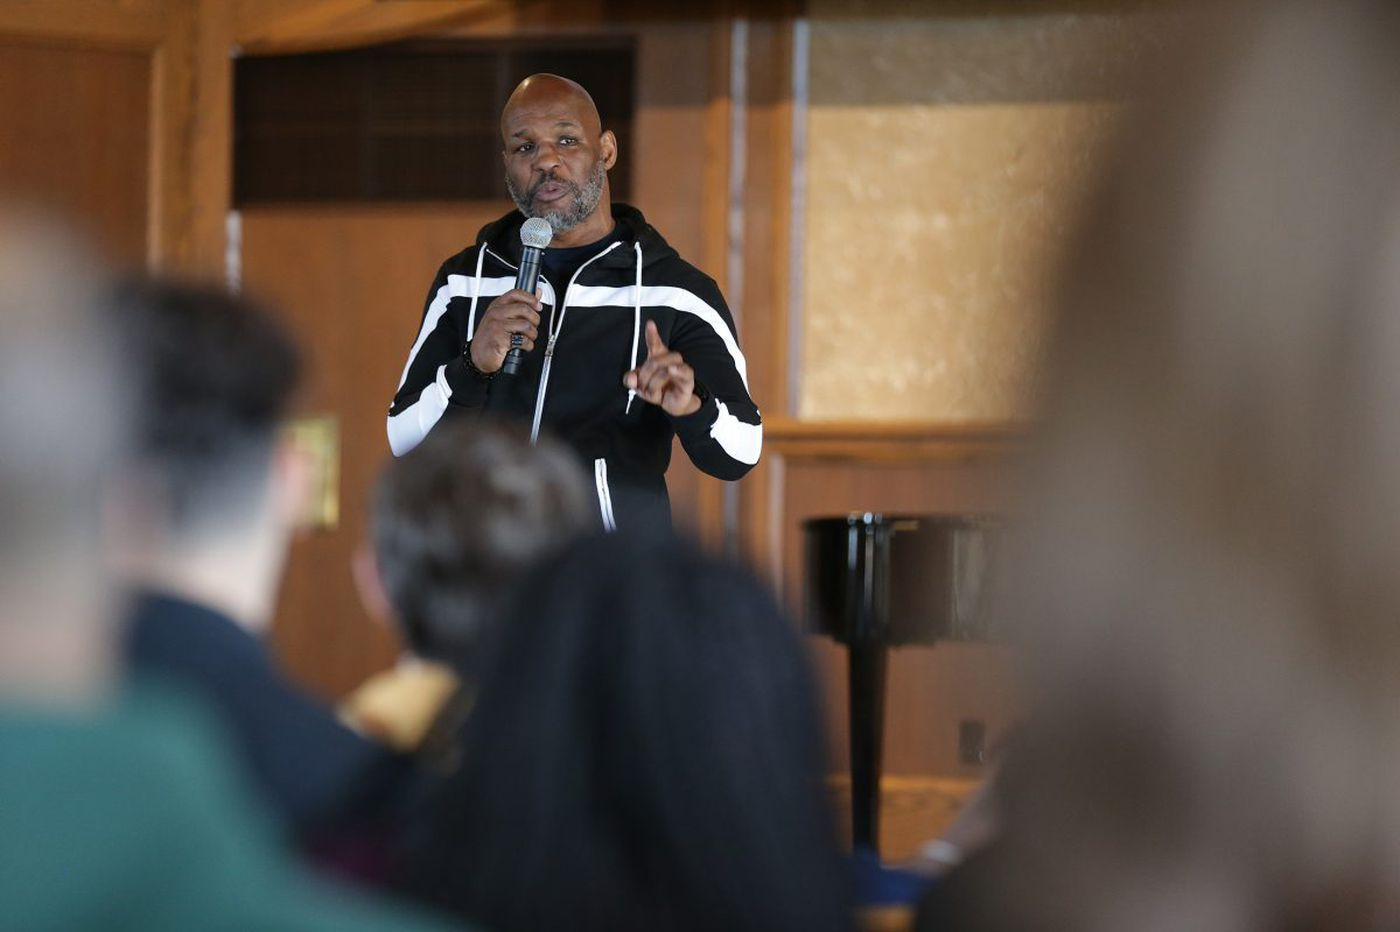 Boxing champ Bernard Hopkins tells troubled students to 'Fight like a champion and be a champion'